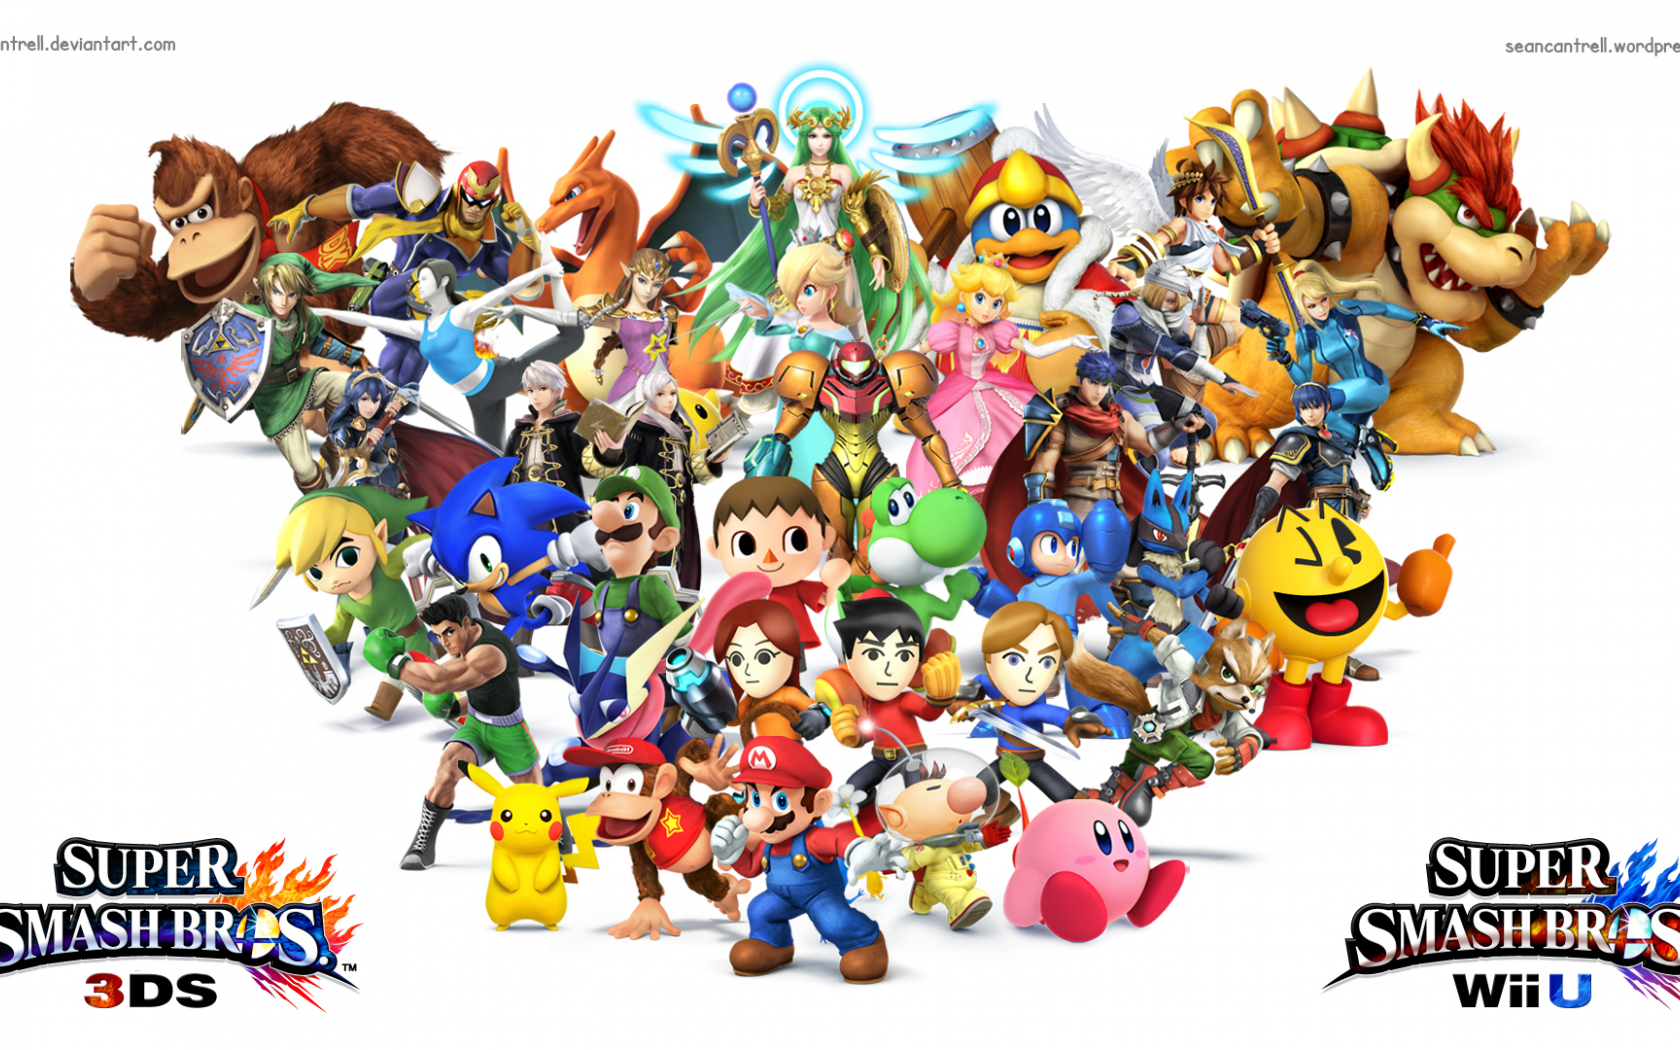 Free Download Super Smash Bros Wii U 3ds Wallpaper By Seancantrell